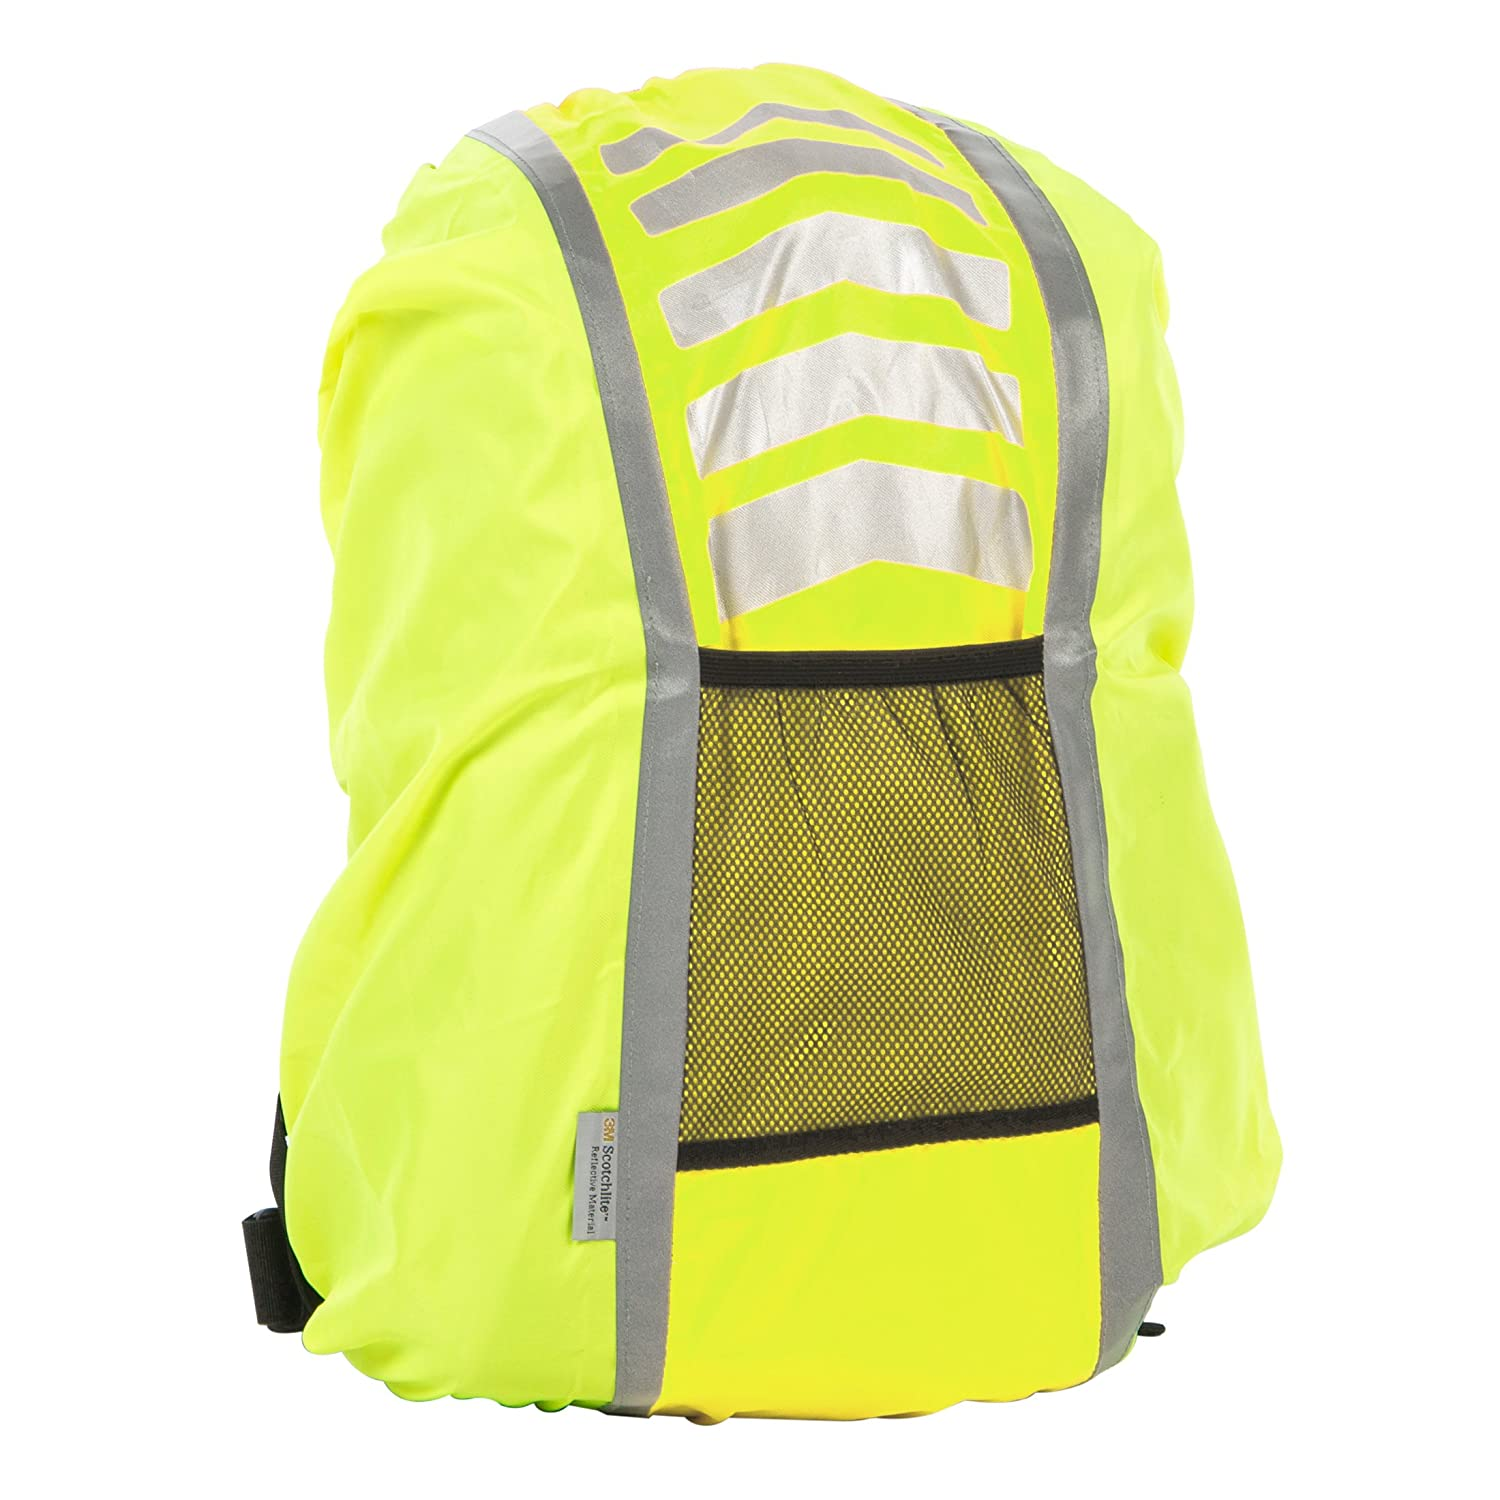 Ultrasport Rain Protection and Safety Cover for School Bags and Backpacks (25-42 litre) 330900000101